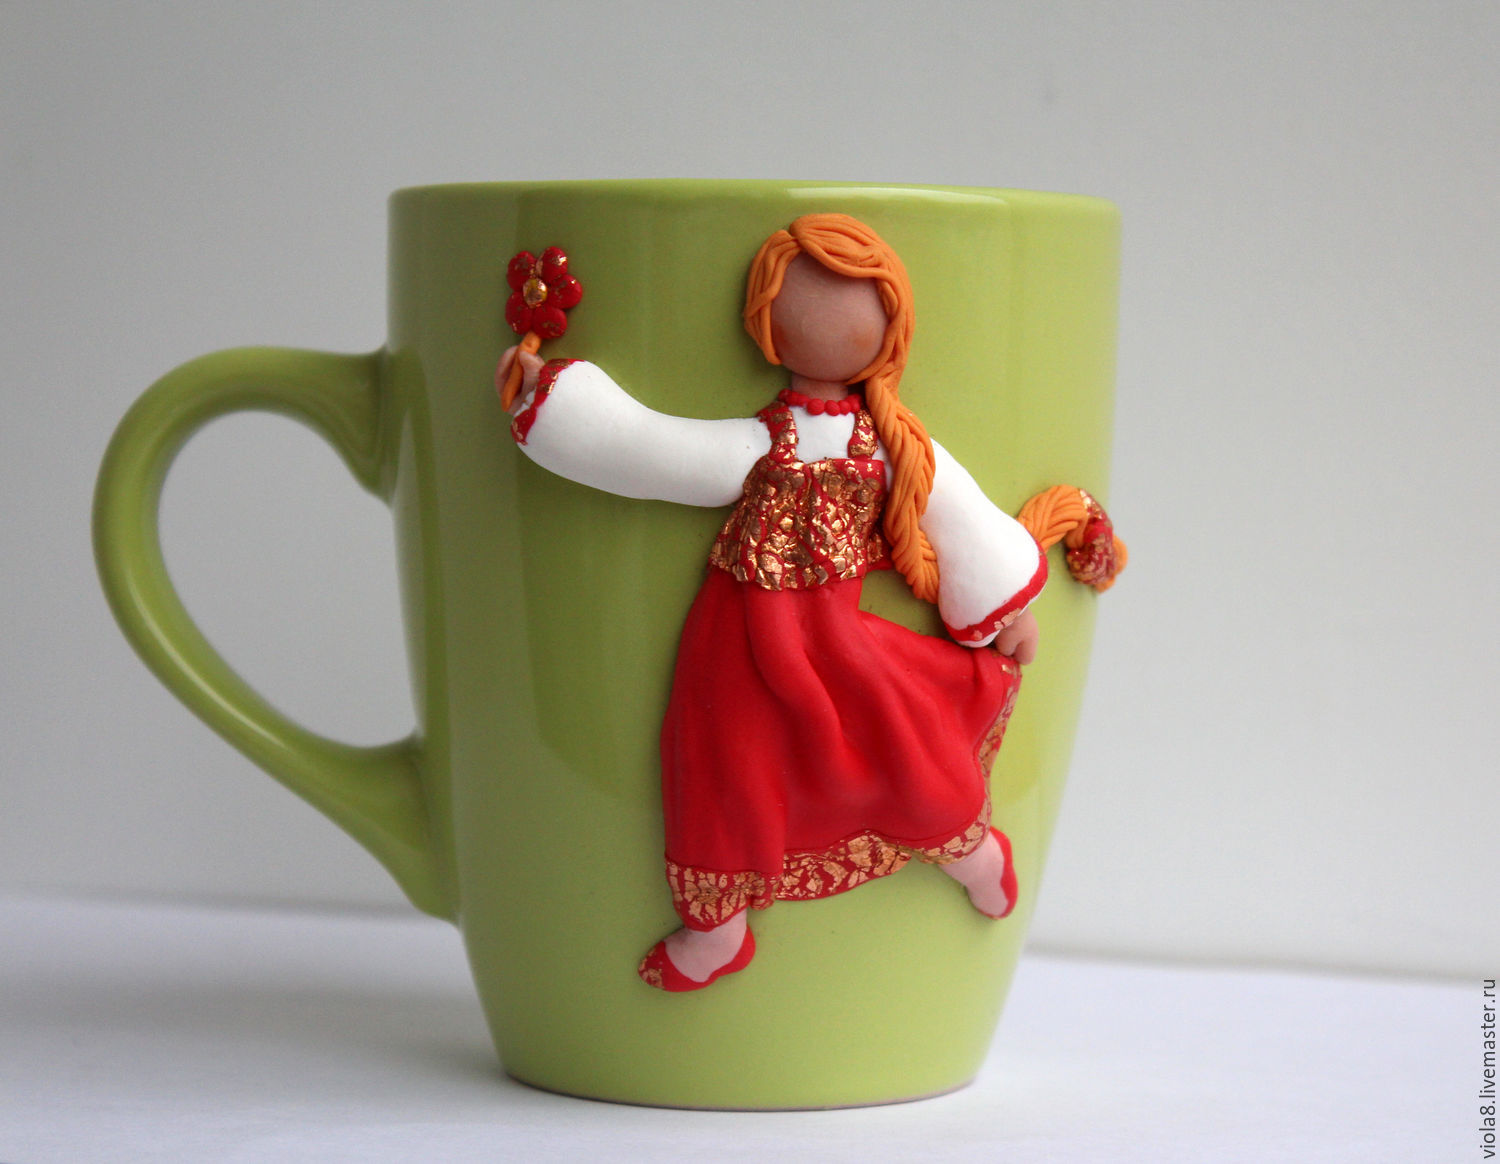 Deco Mug Mug With Decor Decor Mugs Girl In Red Polymer Clay